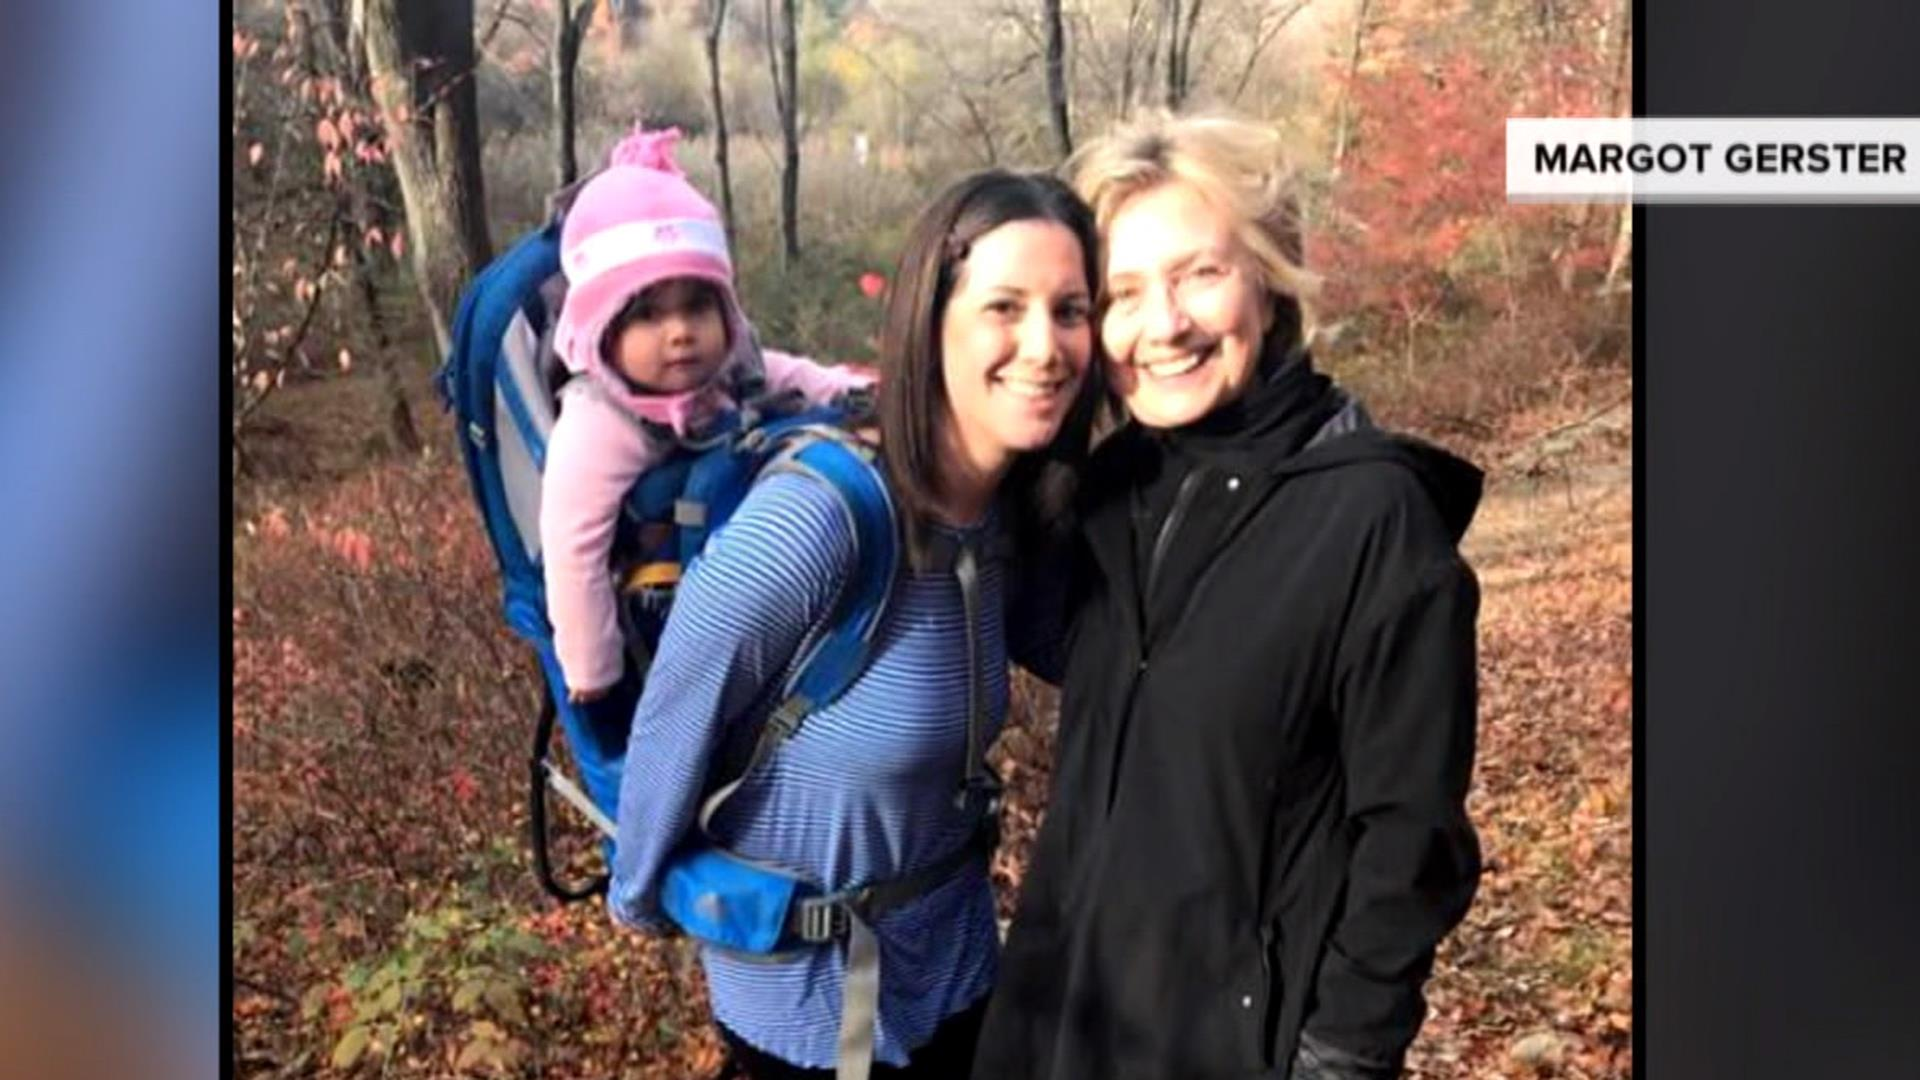 Woman 'Heartbroken' After the Election Runs Into Hillary Clinton While Hiking